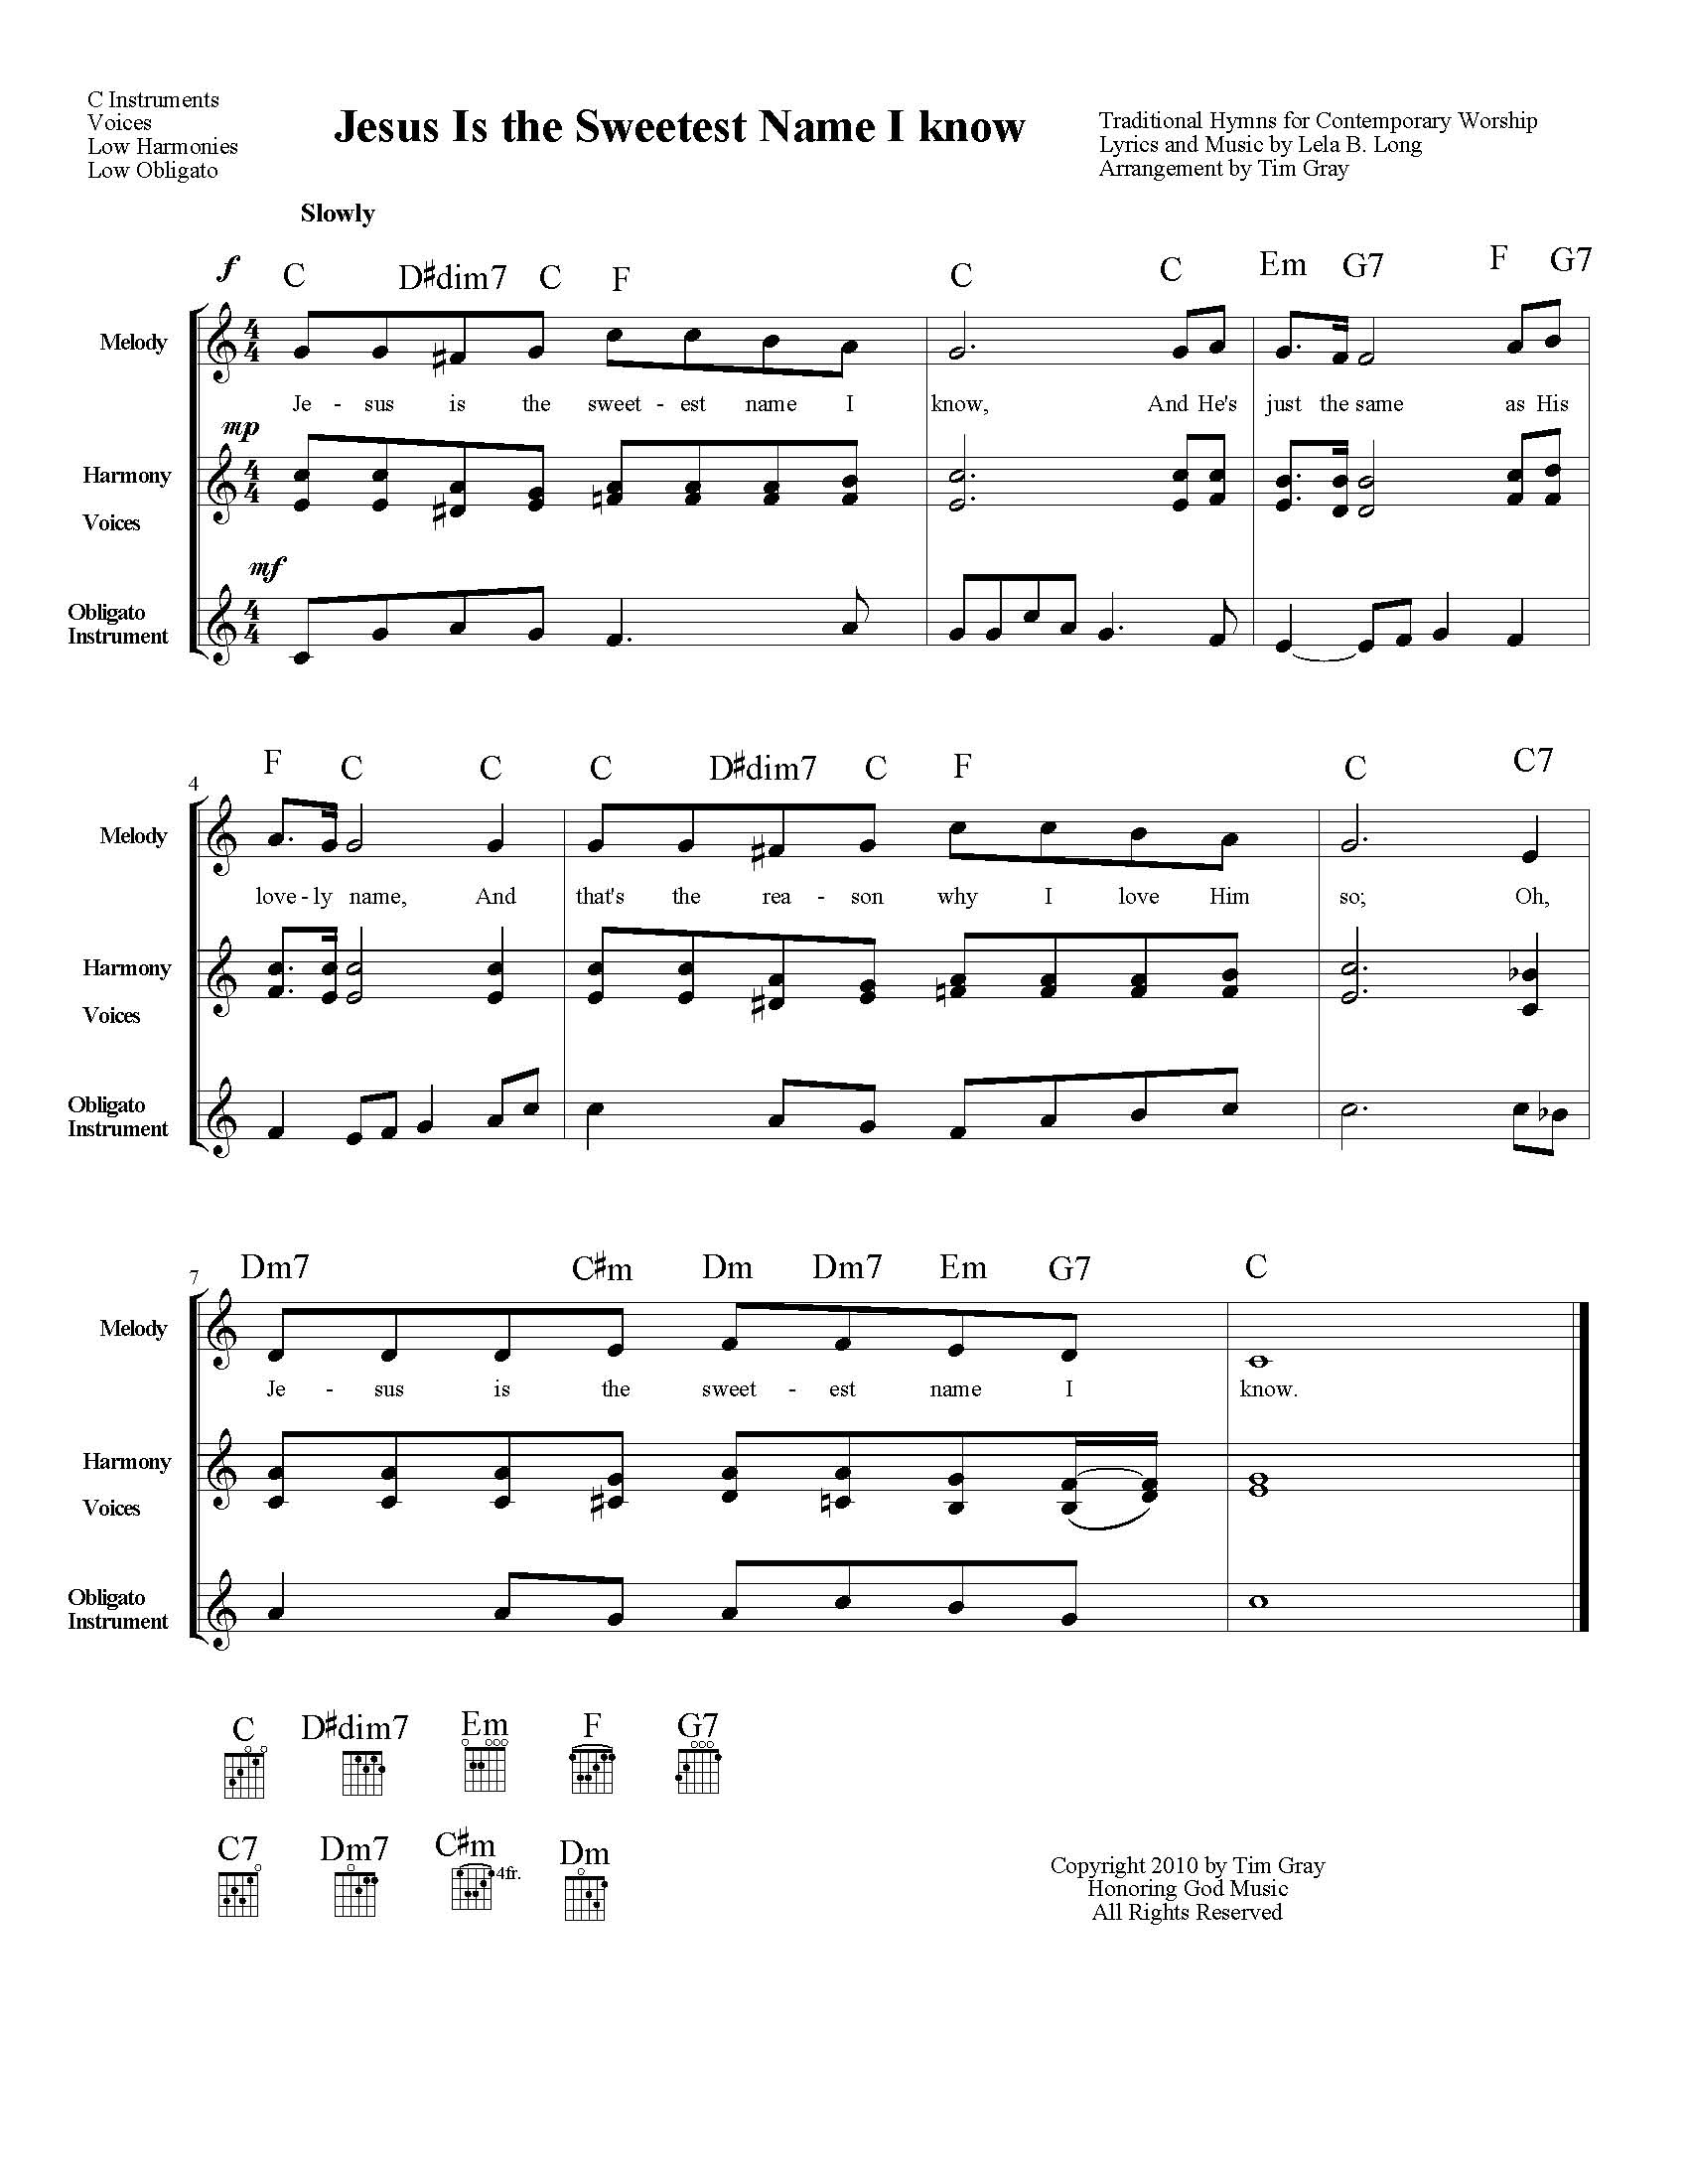 Jesus is the Sweetest Name I Know TH4CW Traditional Hymns for Contemporary Worship sample page on HonoringGodMusic.com